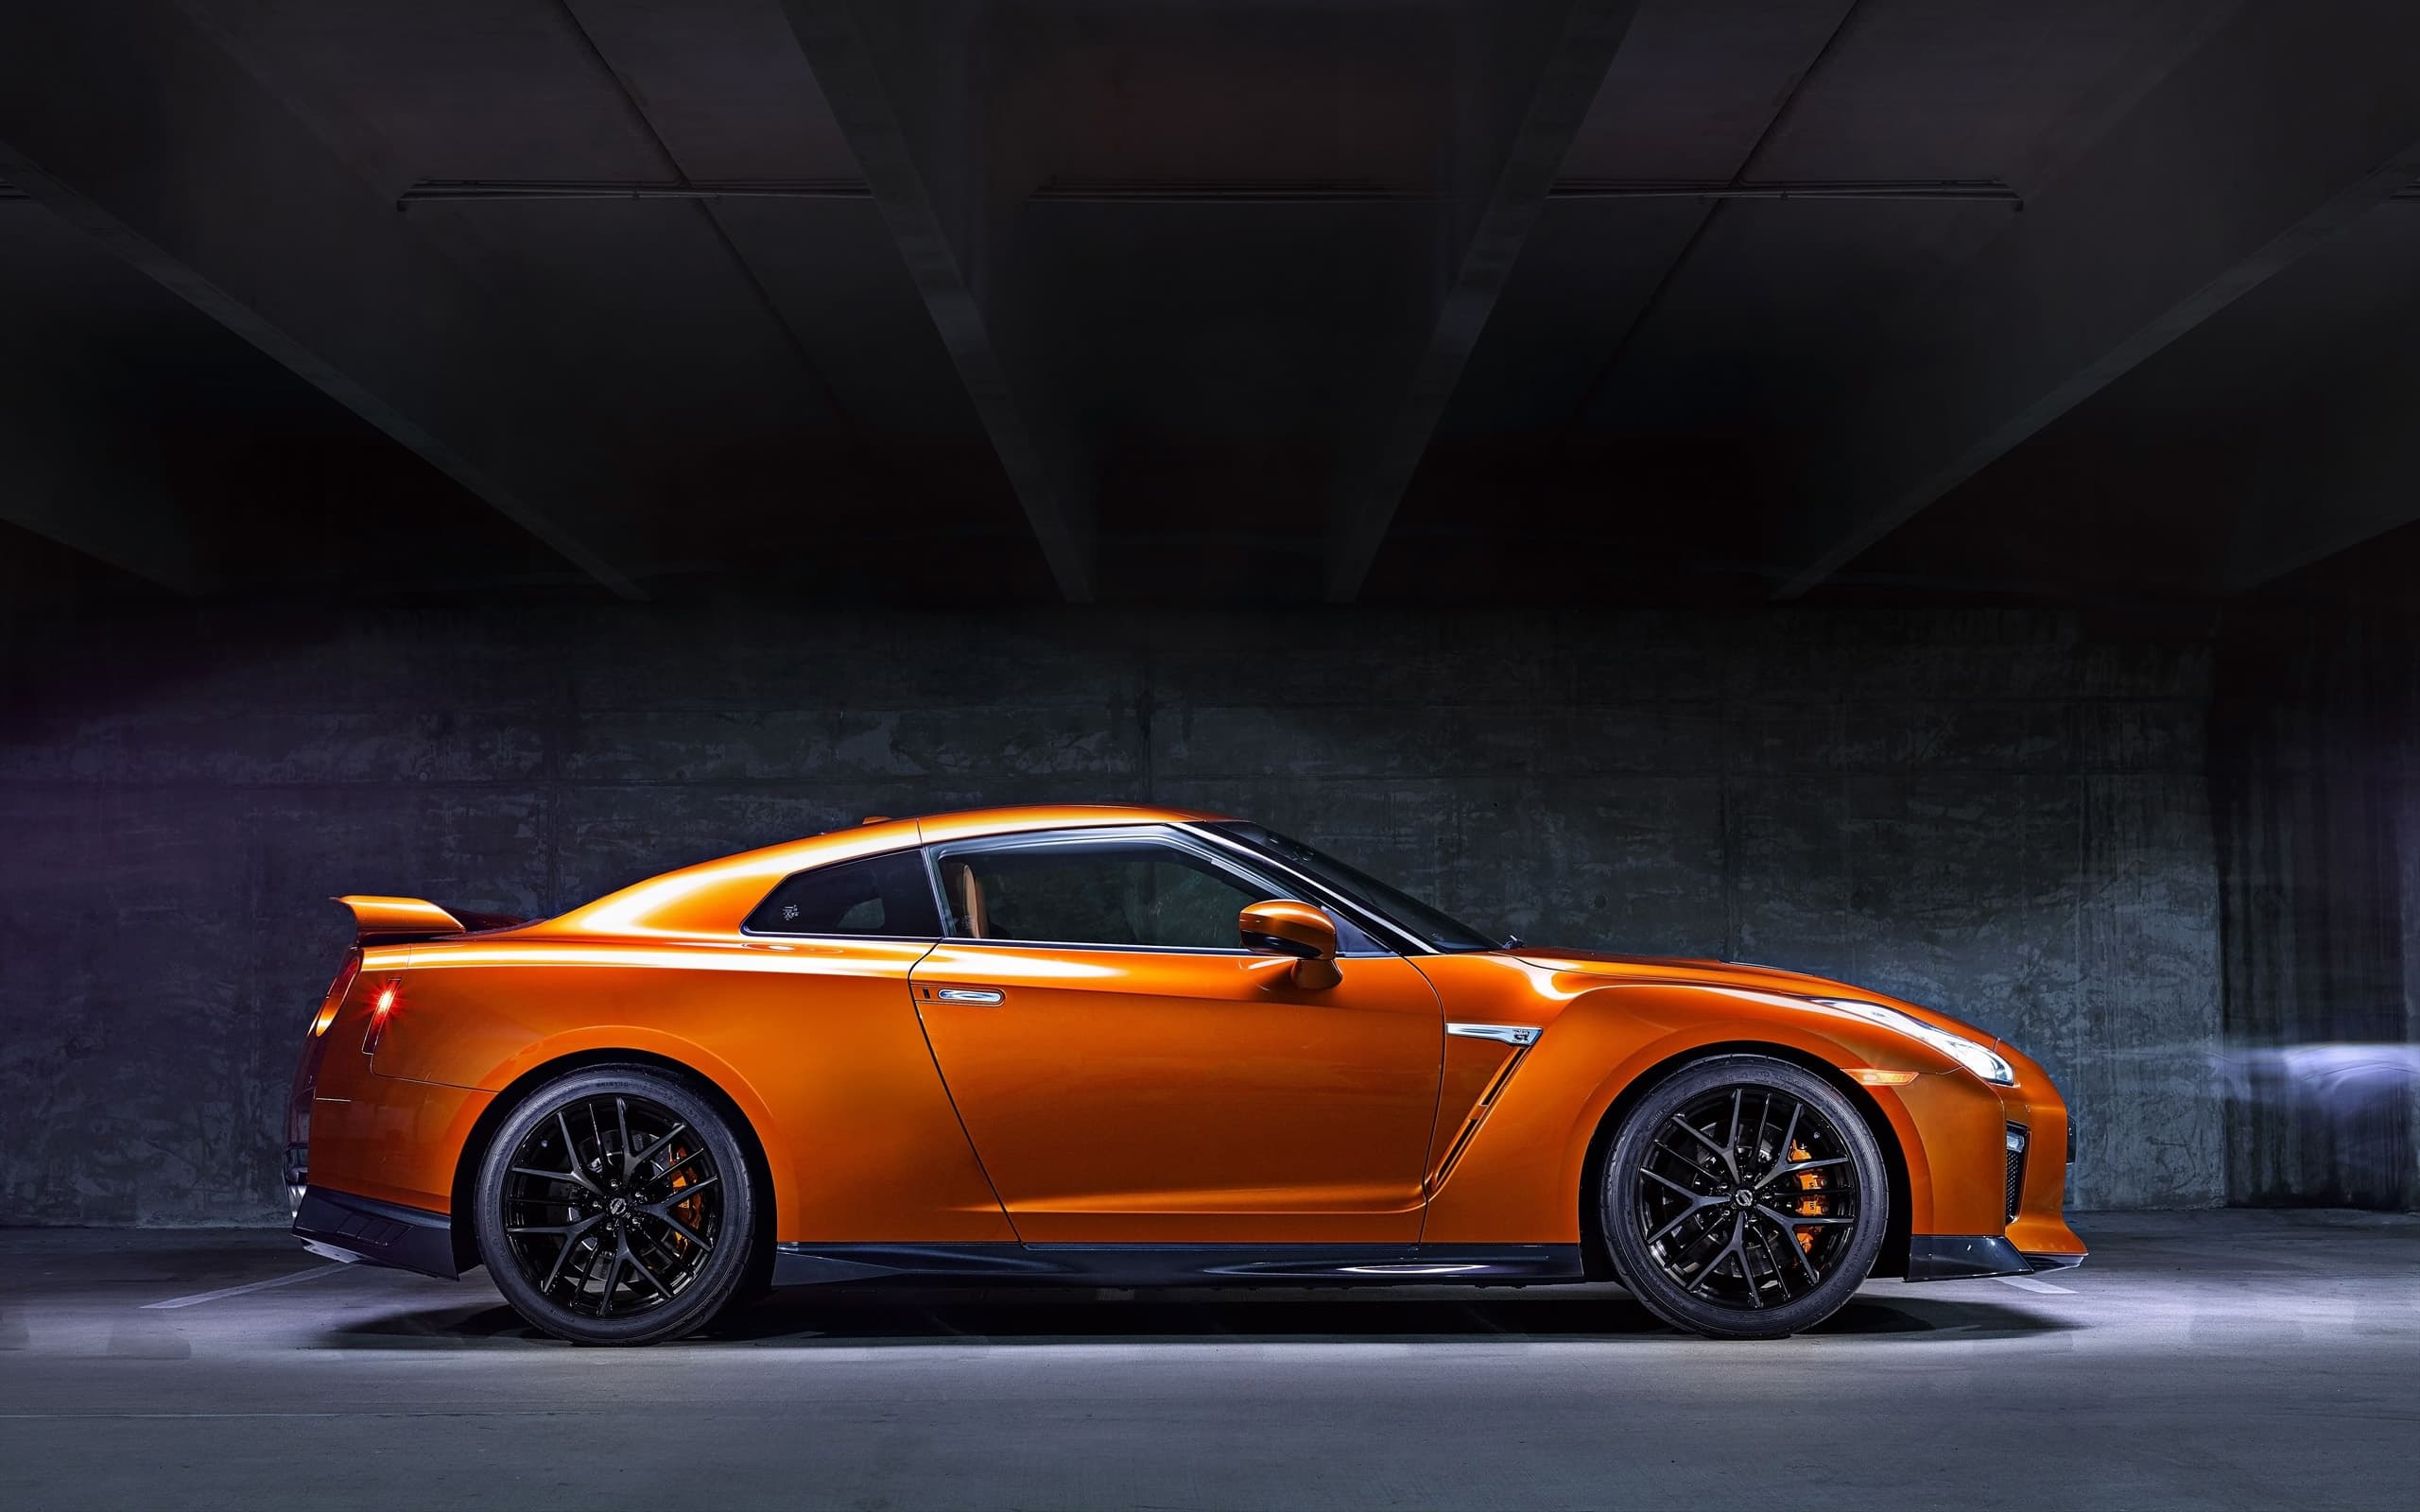 2017 Nissan Gt R Wallpapers High Quality Resolution Download